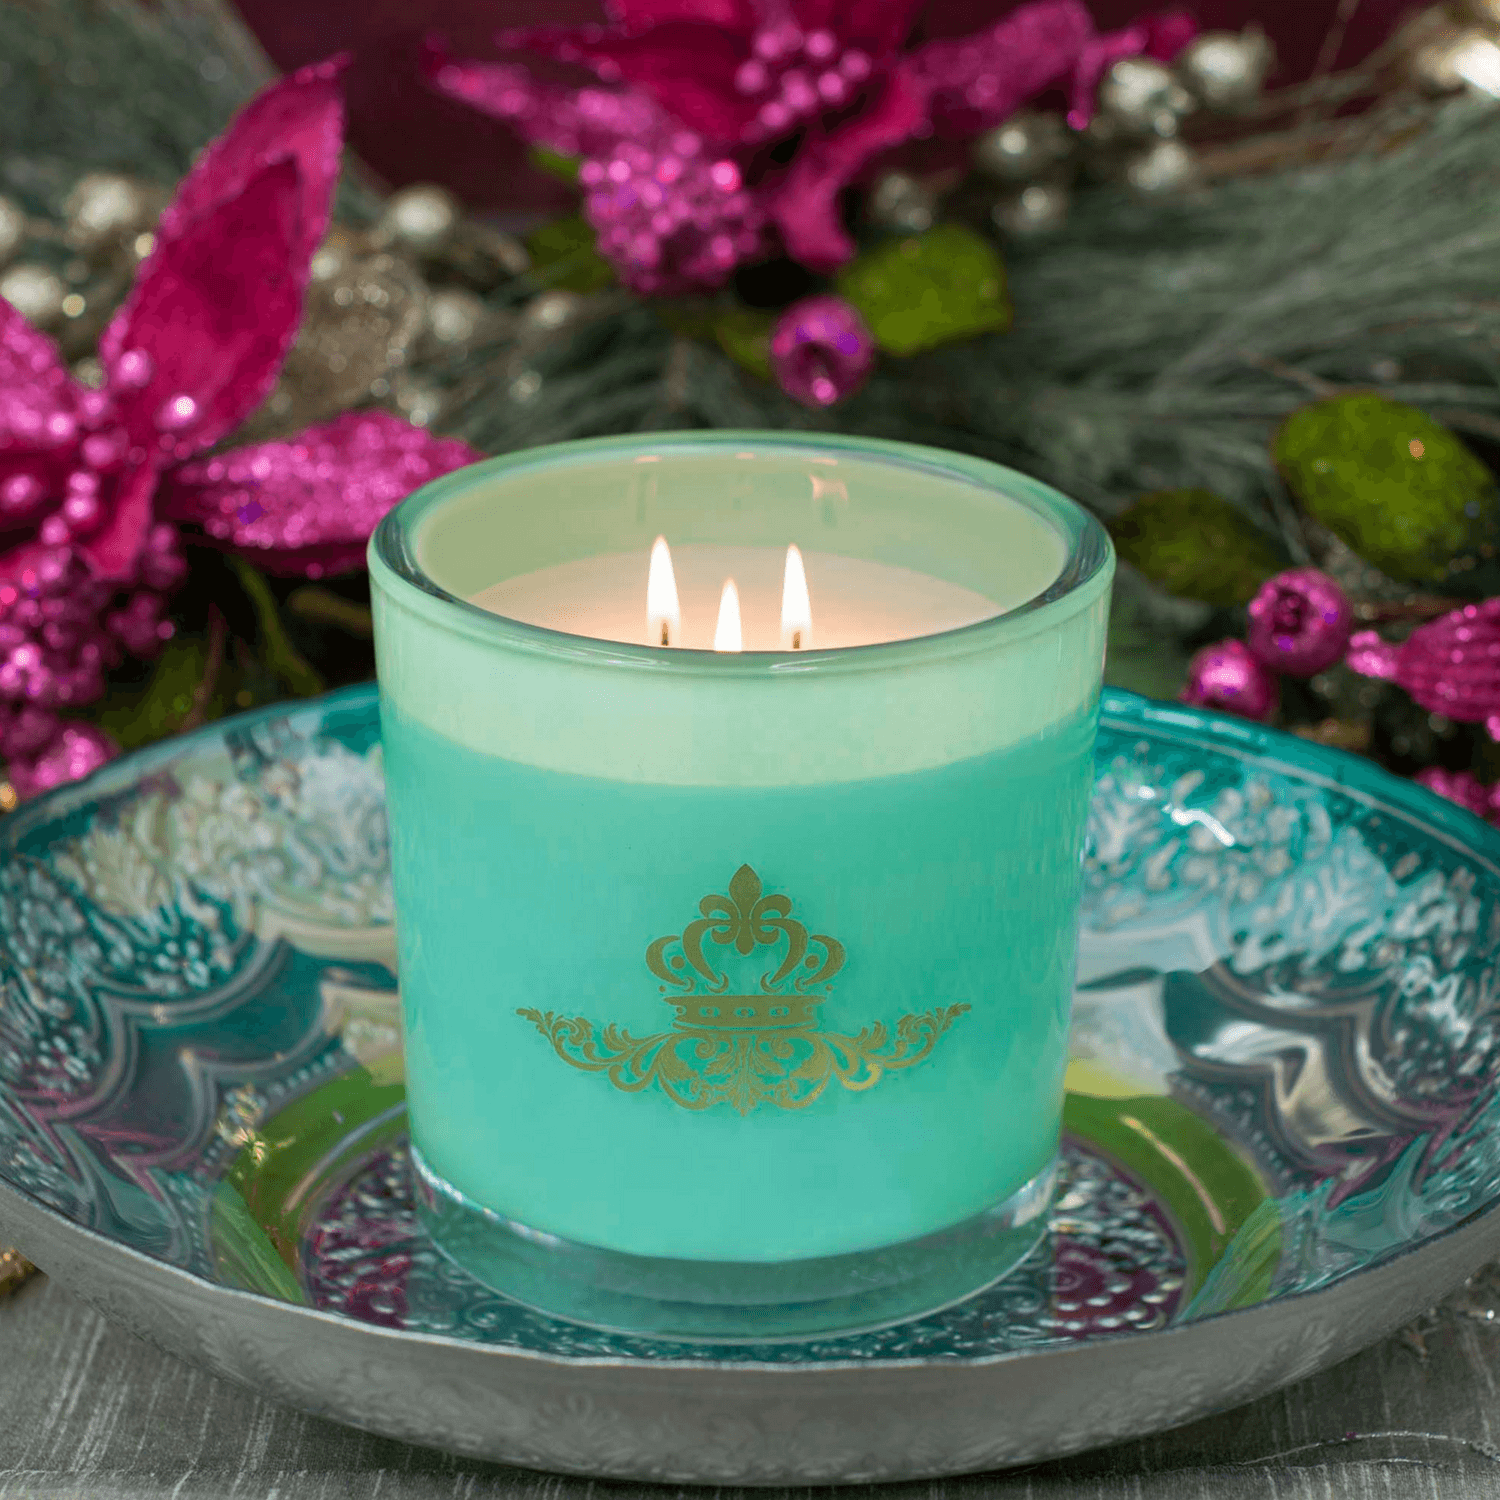 Sugared Pear Luxury 32oz Green Glass Tumbler Candle - Candlemart.com